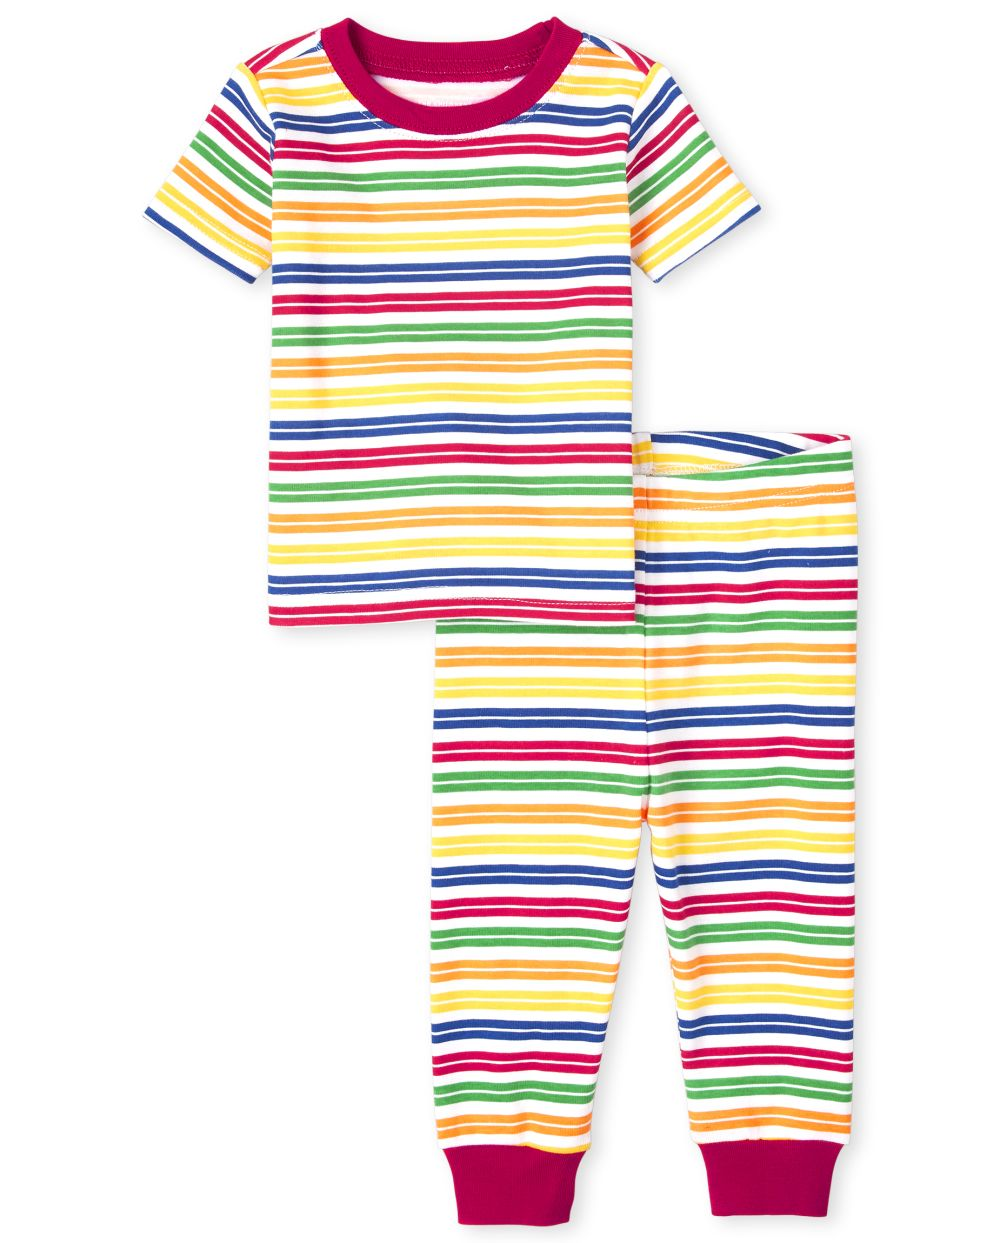 Unisex Baby And Toddler Matching Family Striped Snug Fit Cotton Pajamas - White